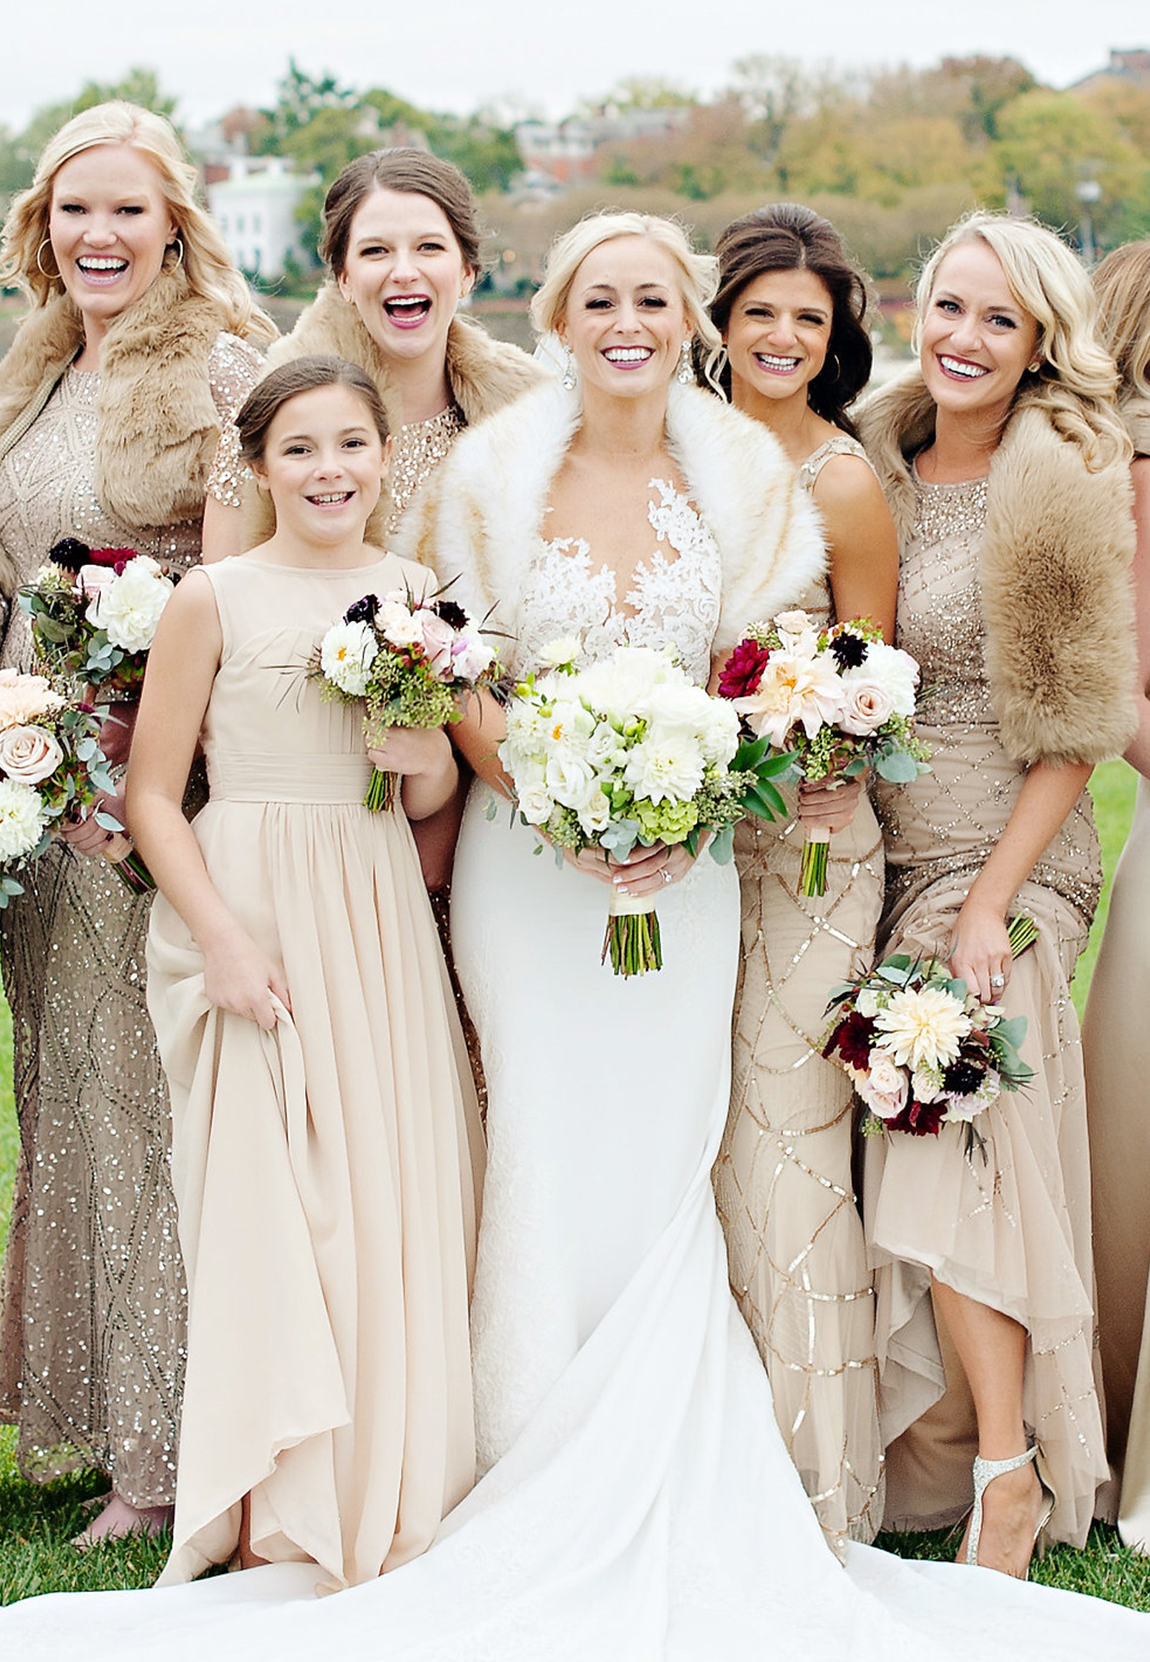 Happy bridal party in blush with rose gold sequin accented bridesmaid dresses and fall pastel wedding bouquets accented by crimson red and burgundy flowers.